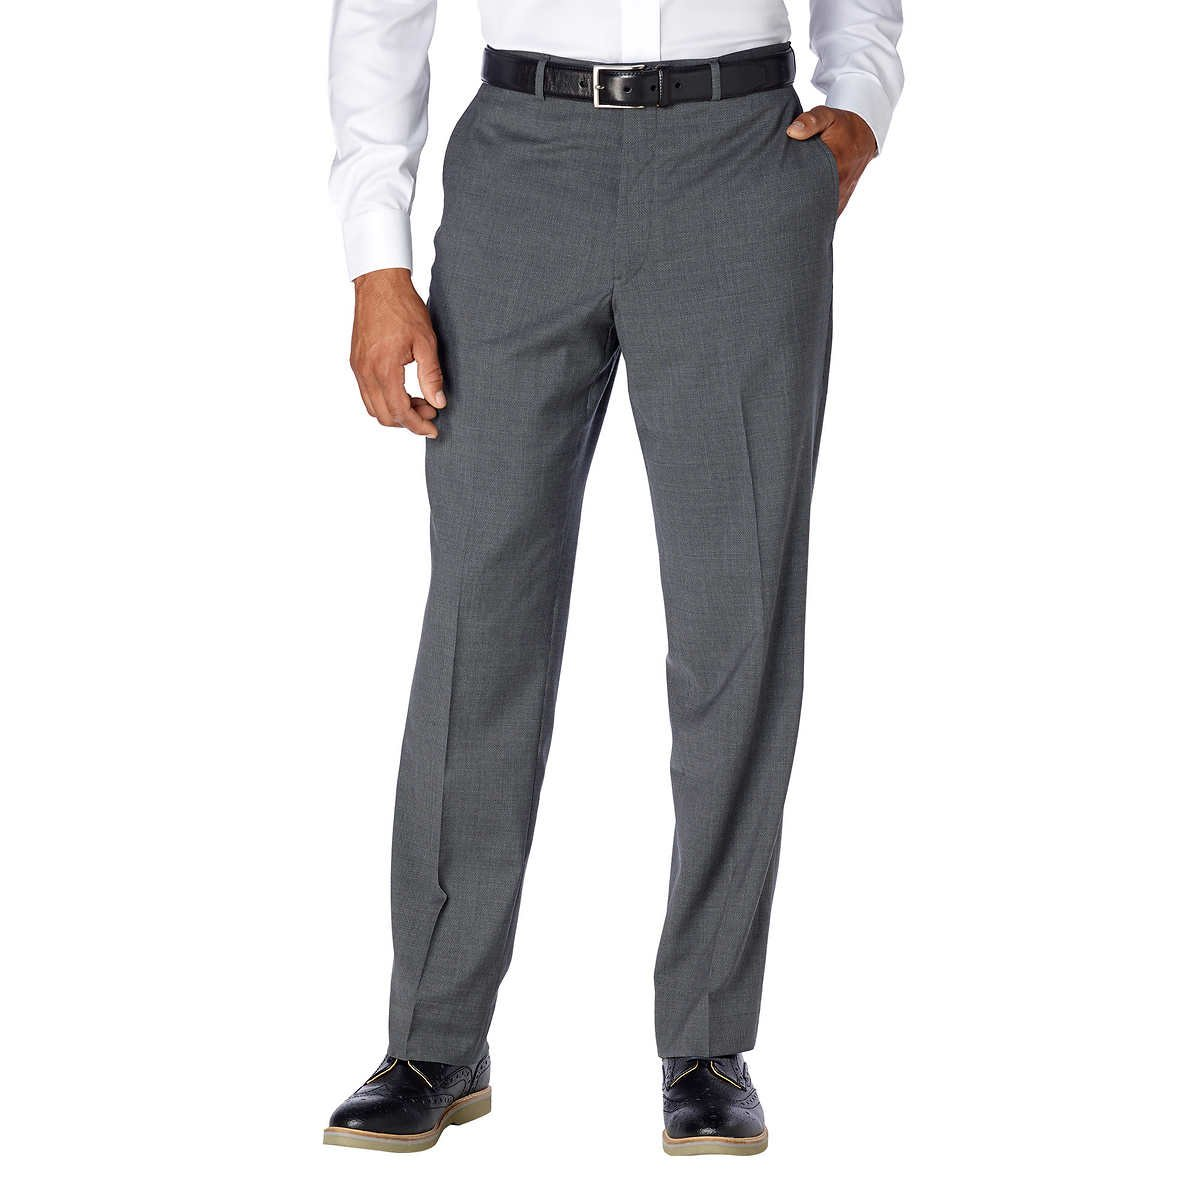 Kirkland Signature Men's Wool Flat Front Dress Pant! (Grey, 36W x 29L)